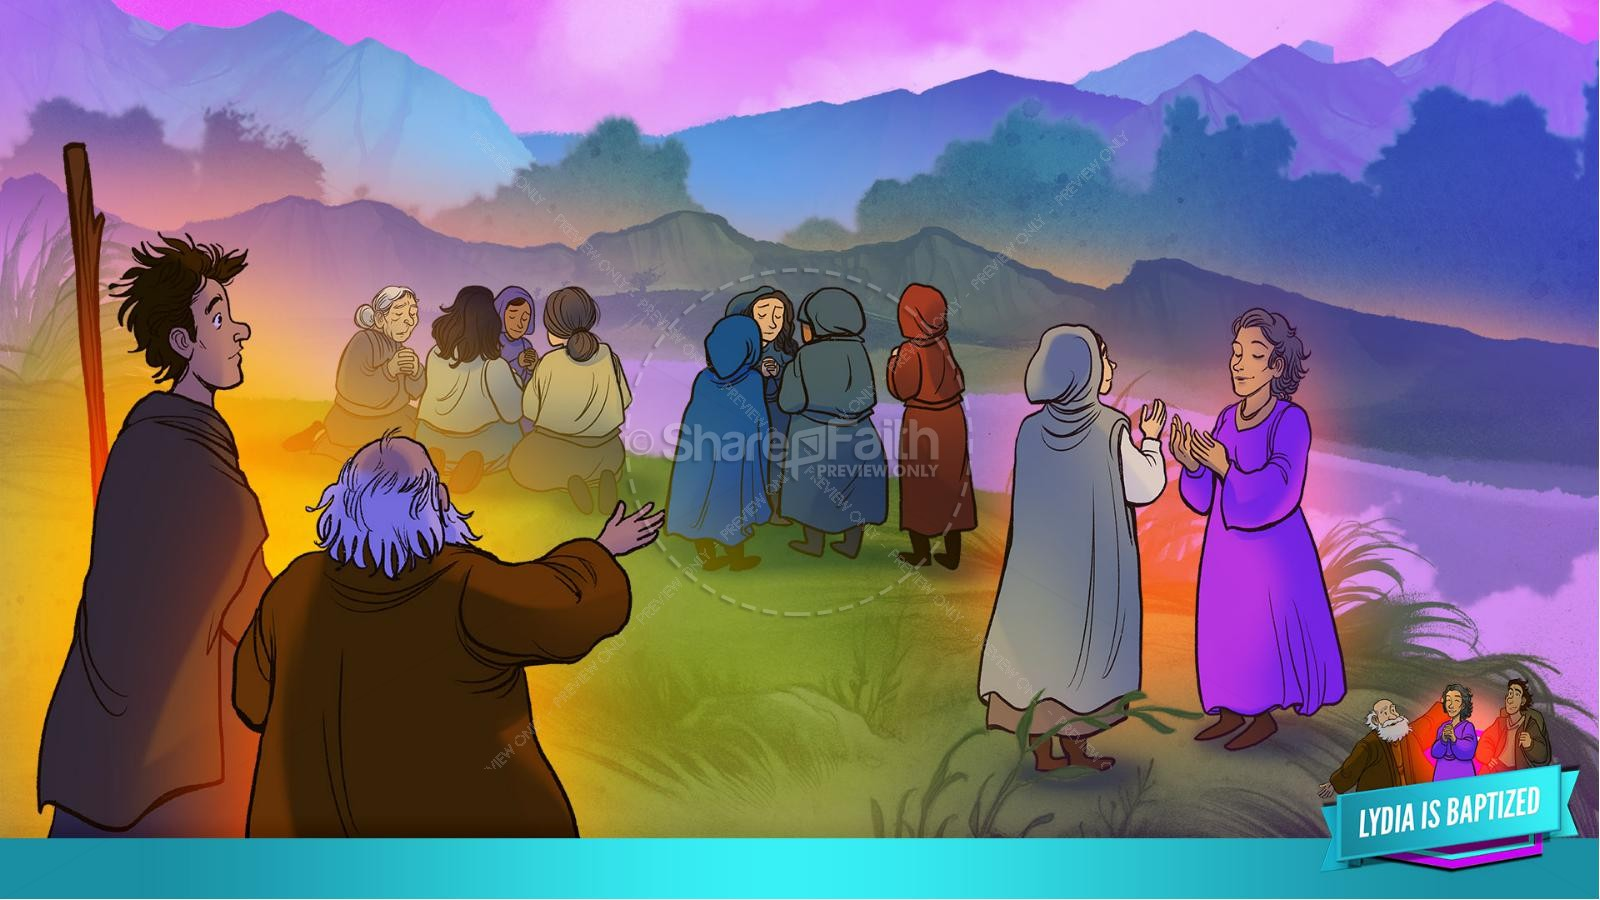 Acts 16 Lydia is Baptized Kids Bible Story   slide 26